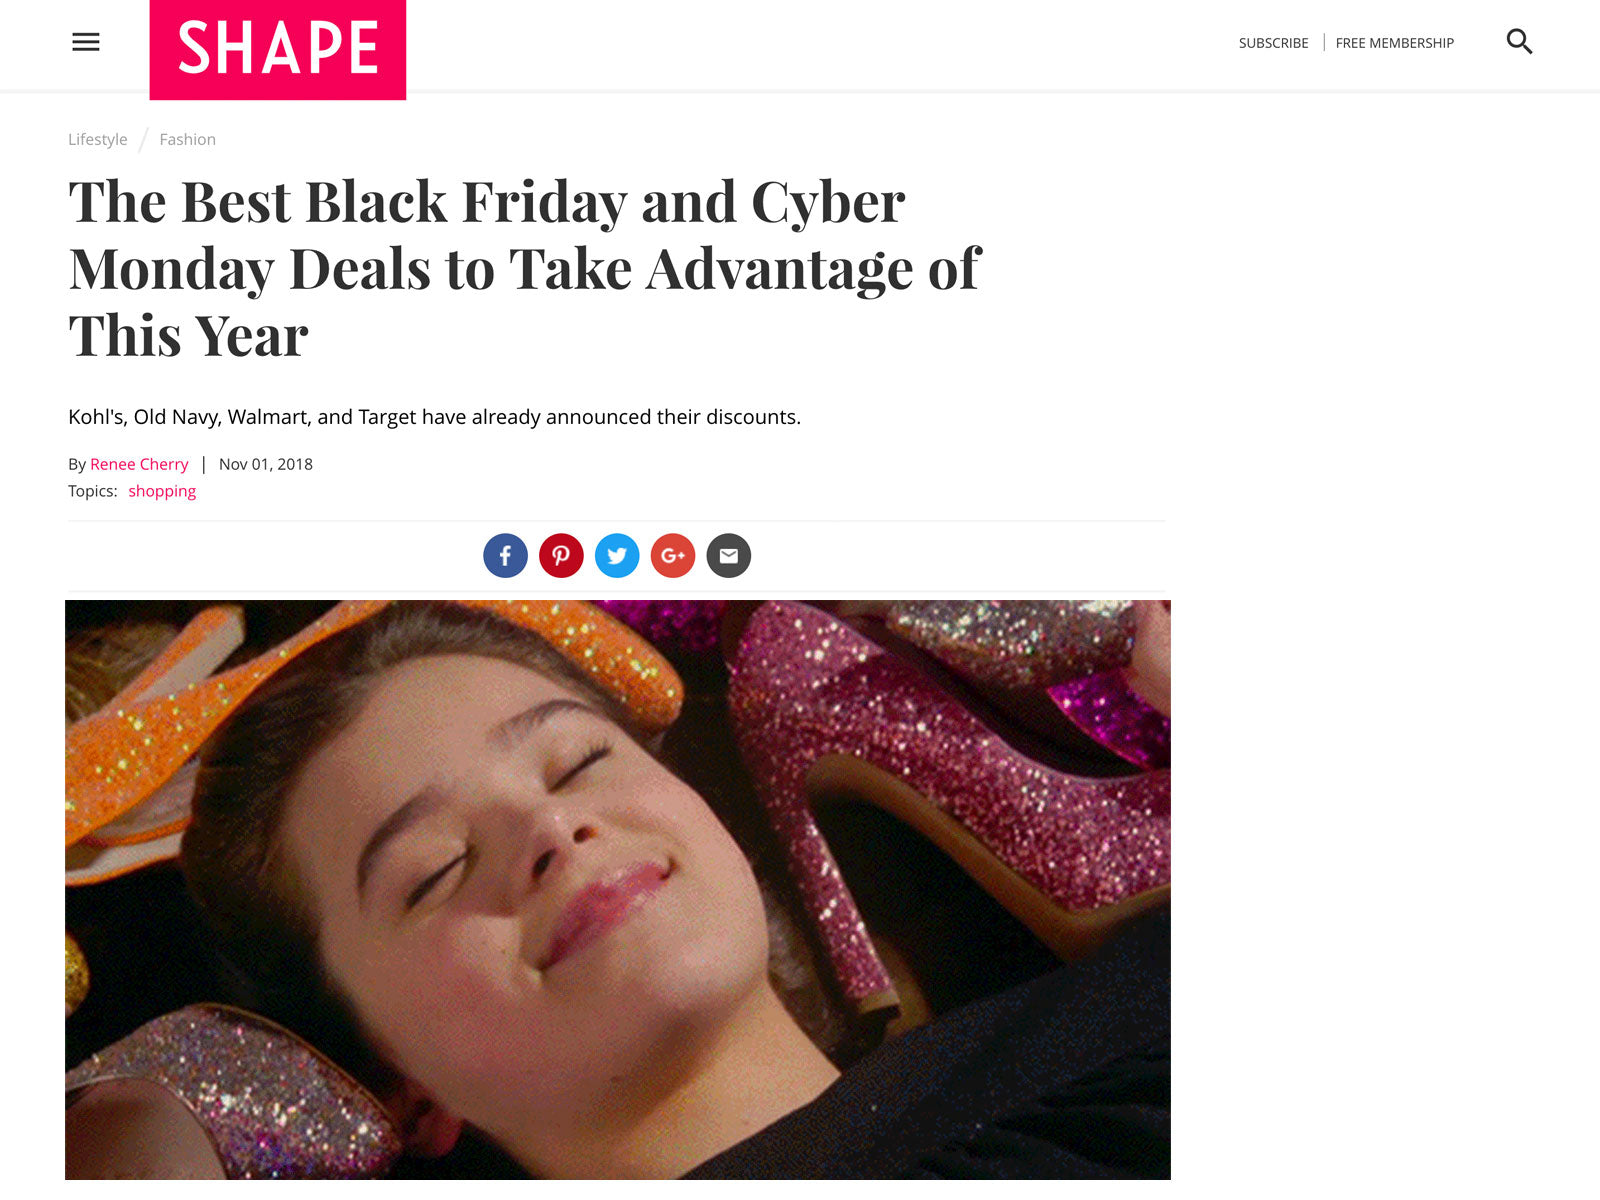 Shape Lists Skylar As One of Best Black Friday & Cyber Monday Deals